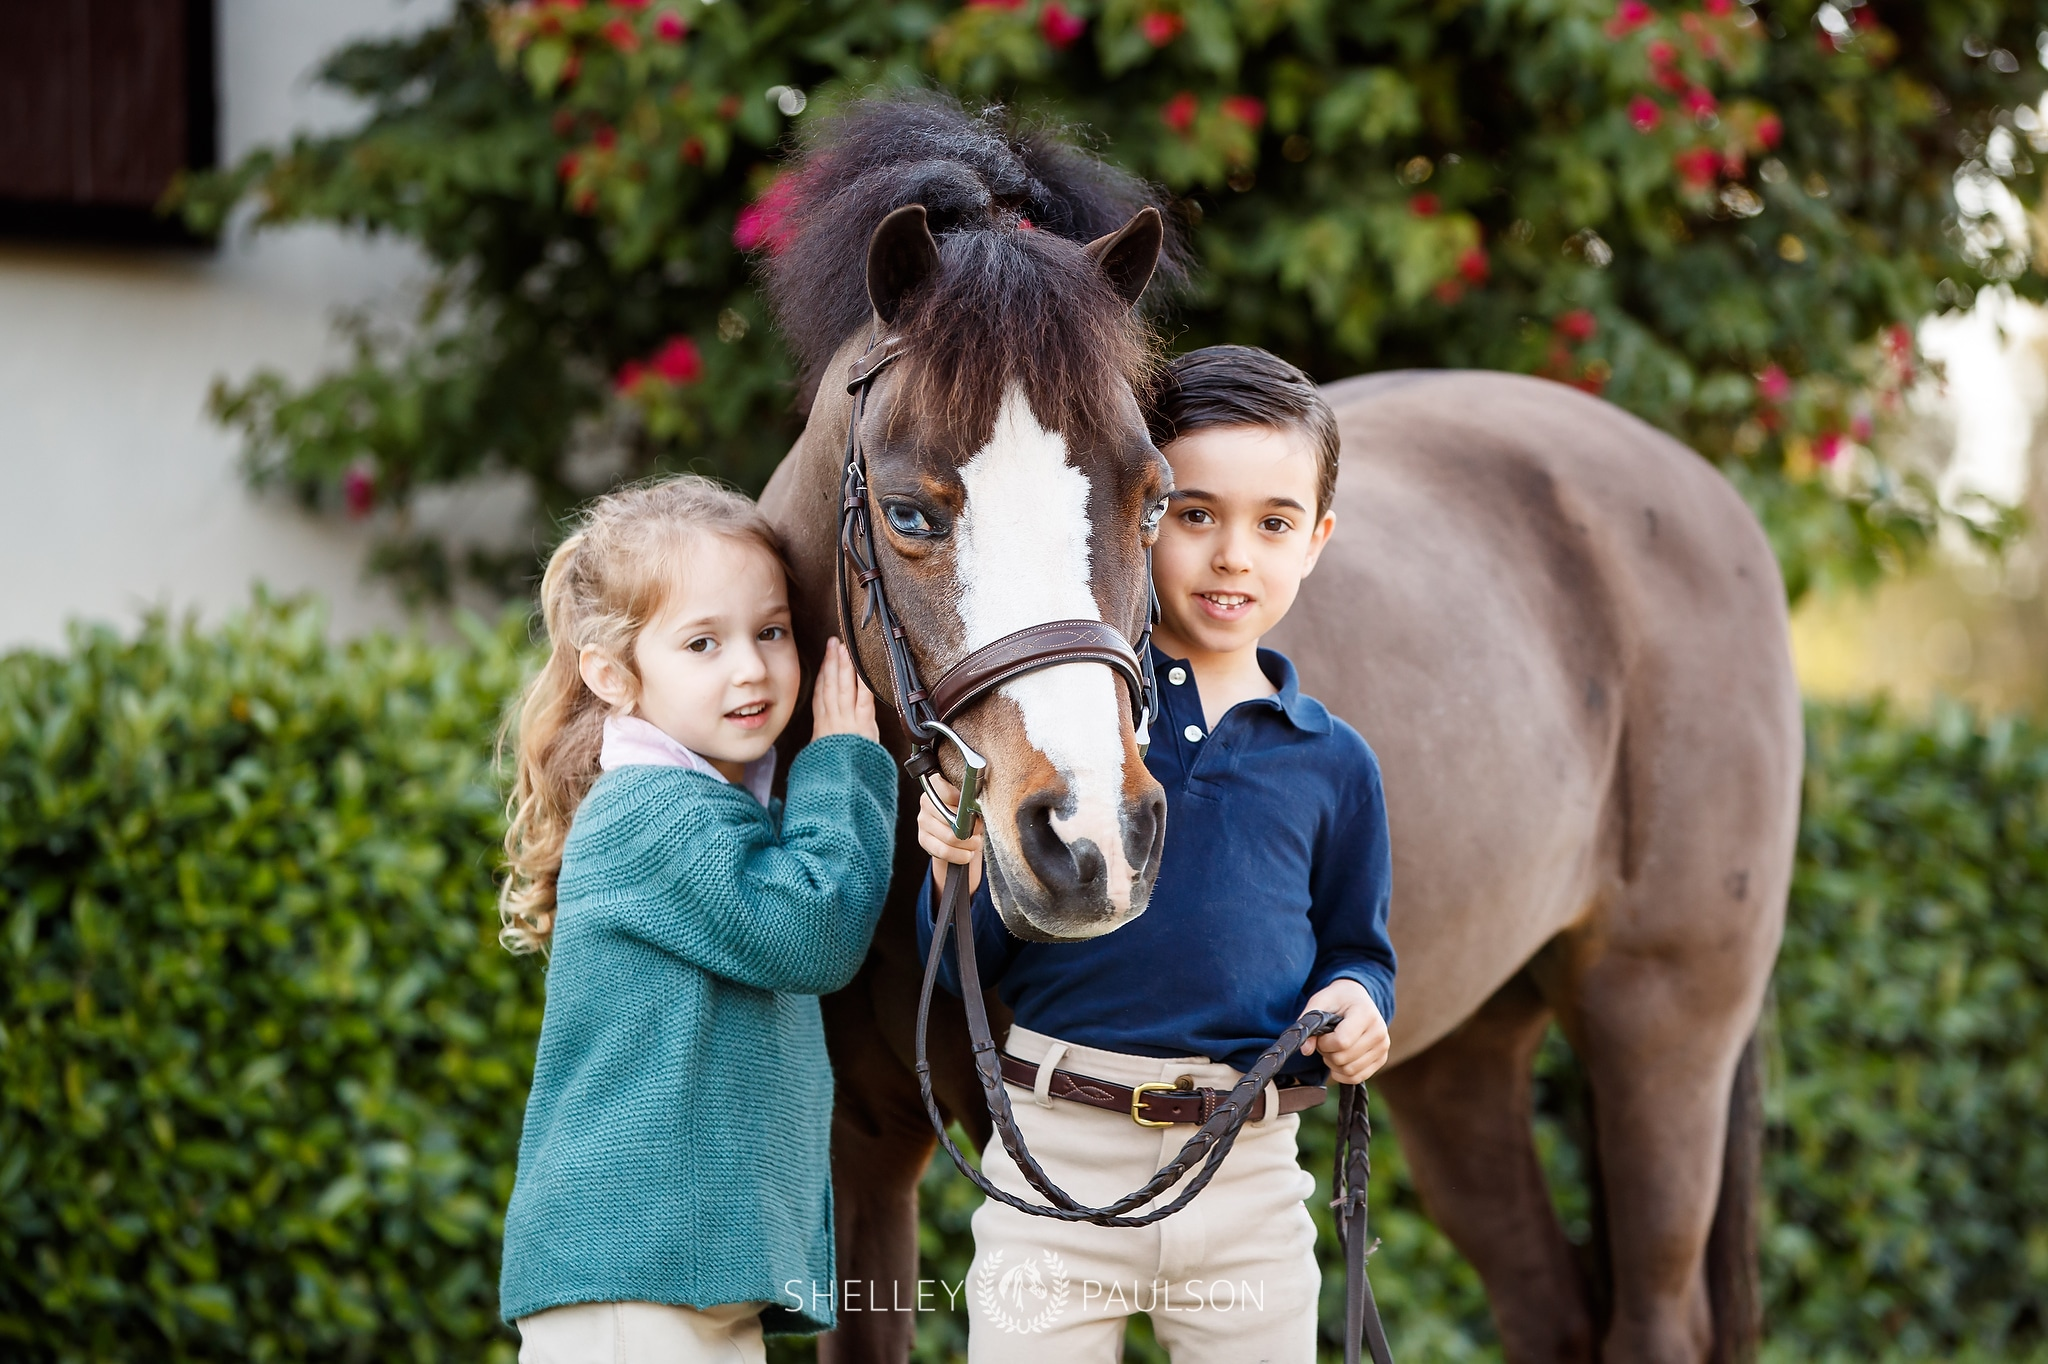 Portraits of Two Kids and their Pony